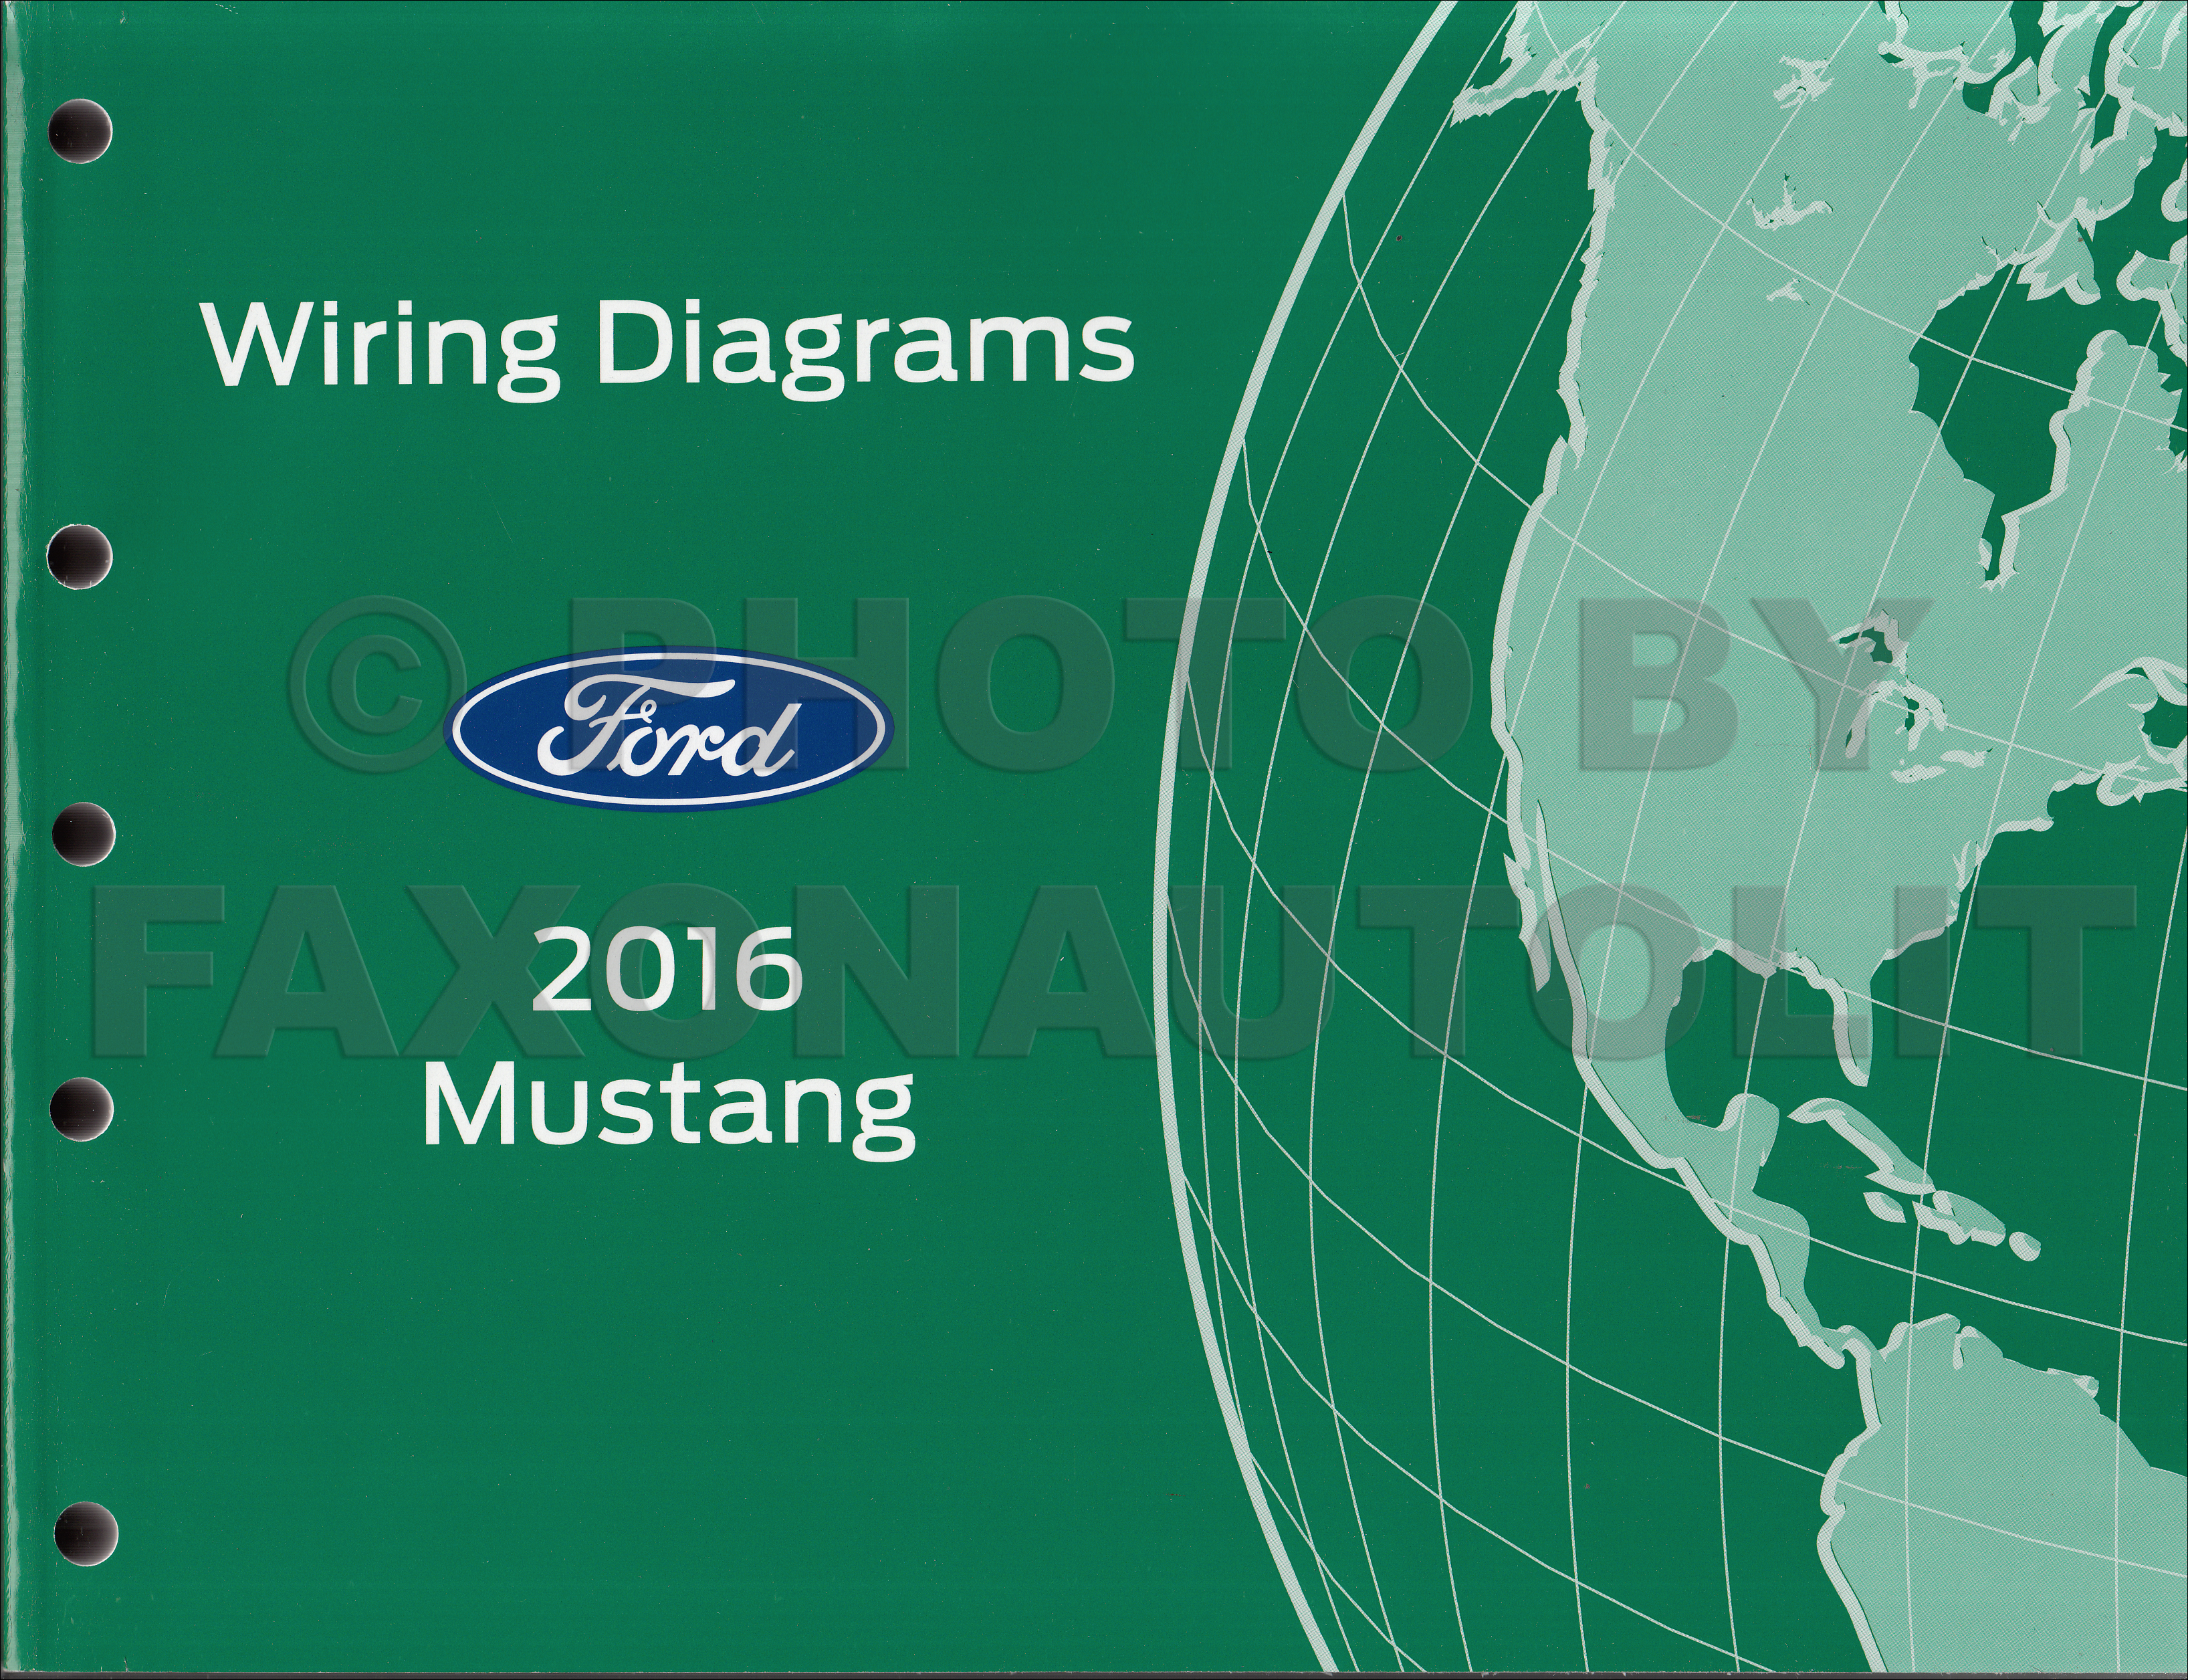 2016 ford mustang wiring diagram manual original 2016 mustang gt wiring diagram 1986 mustang wiring diagram faxon auto literature